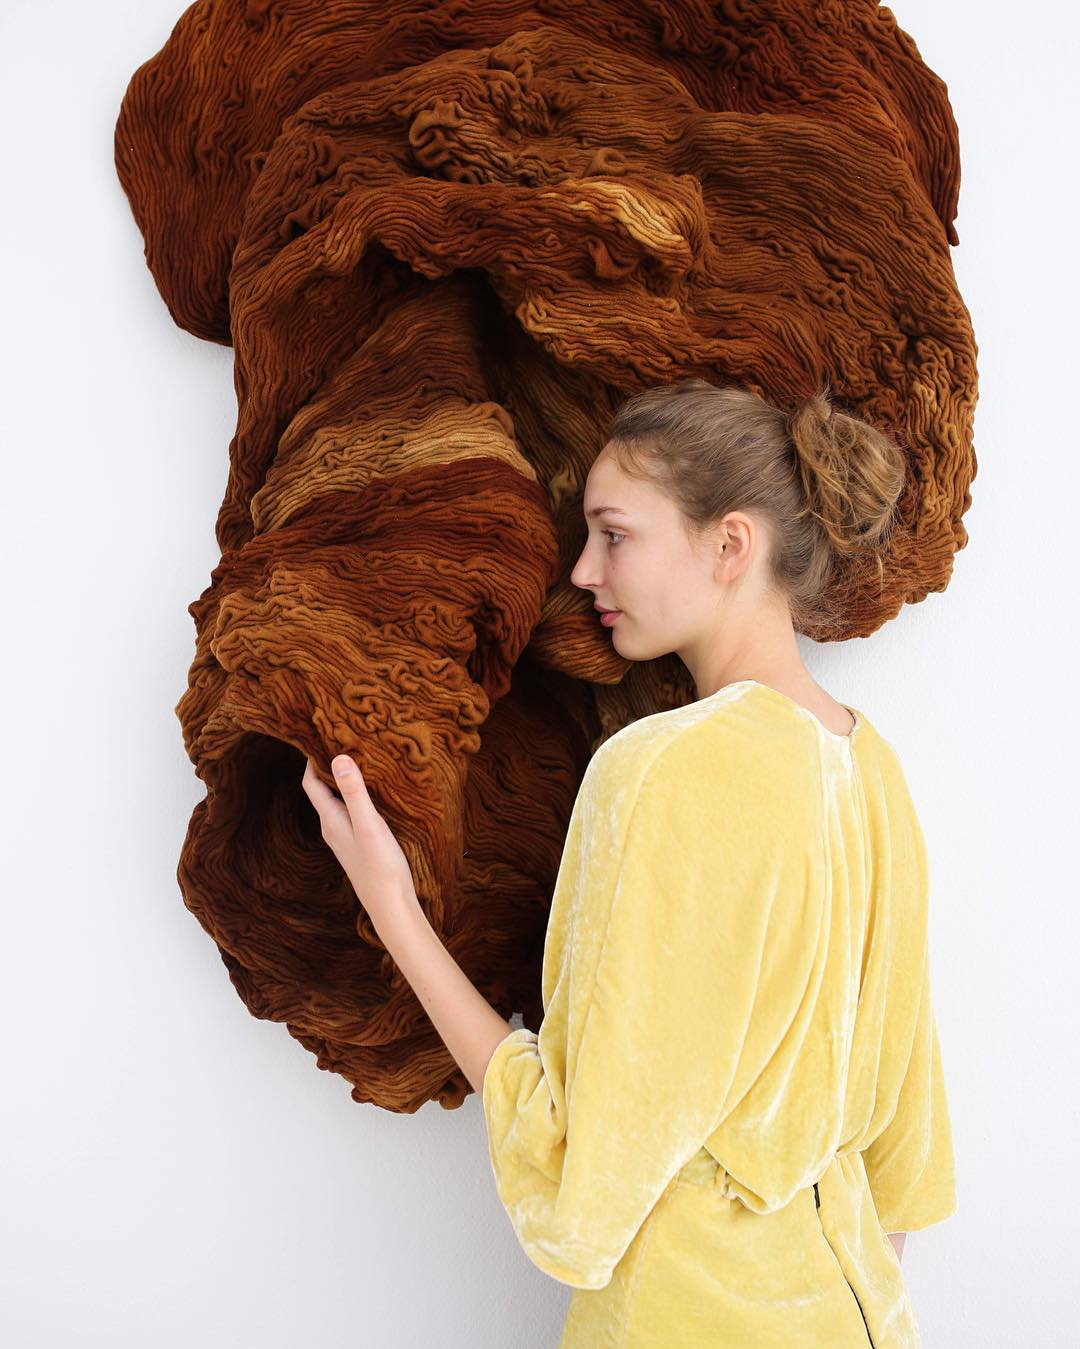 Handdyed sculpture and blouse-hanne-friis.jpg